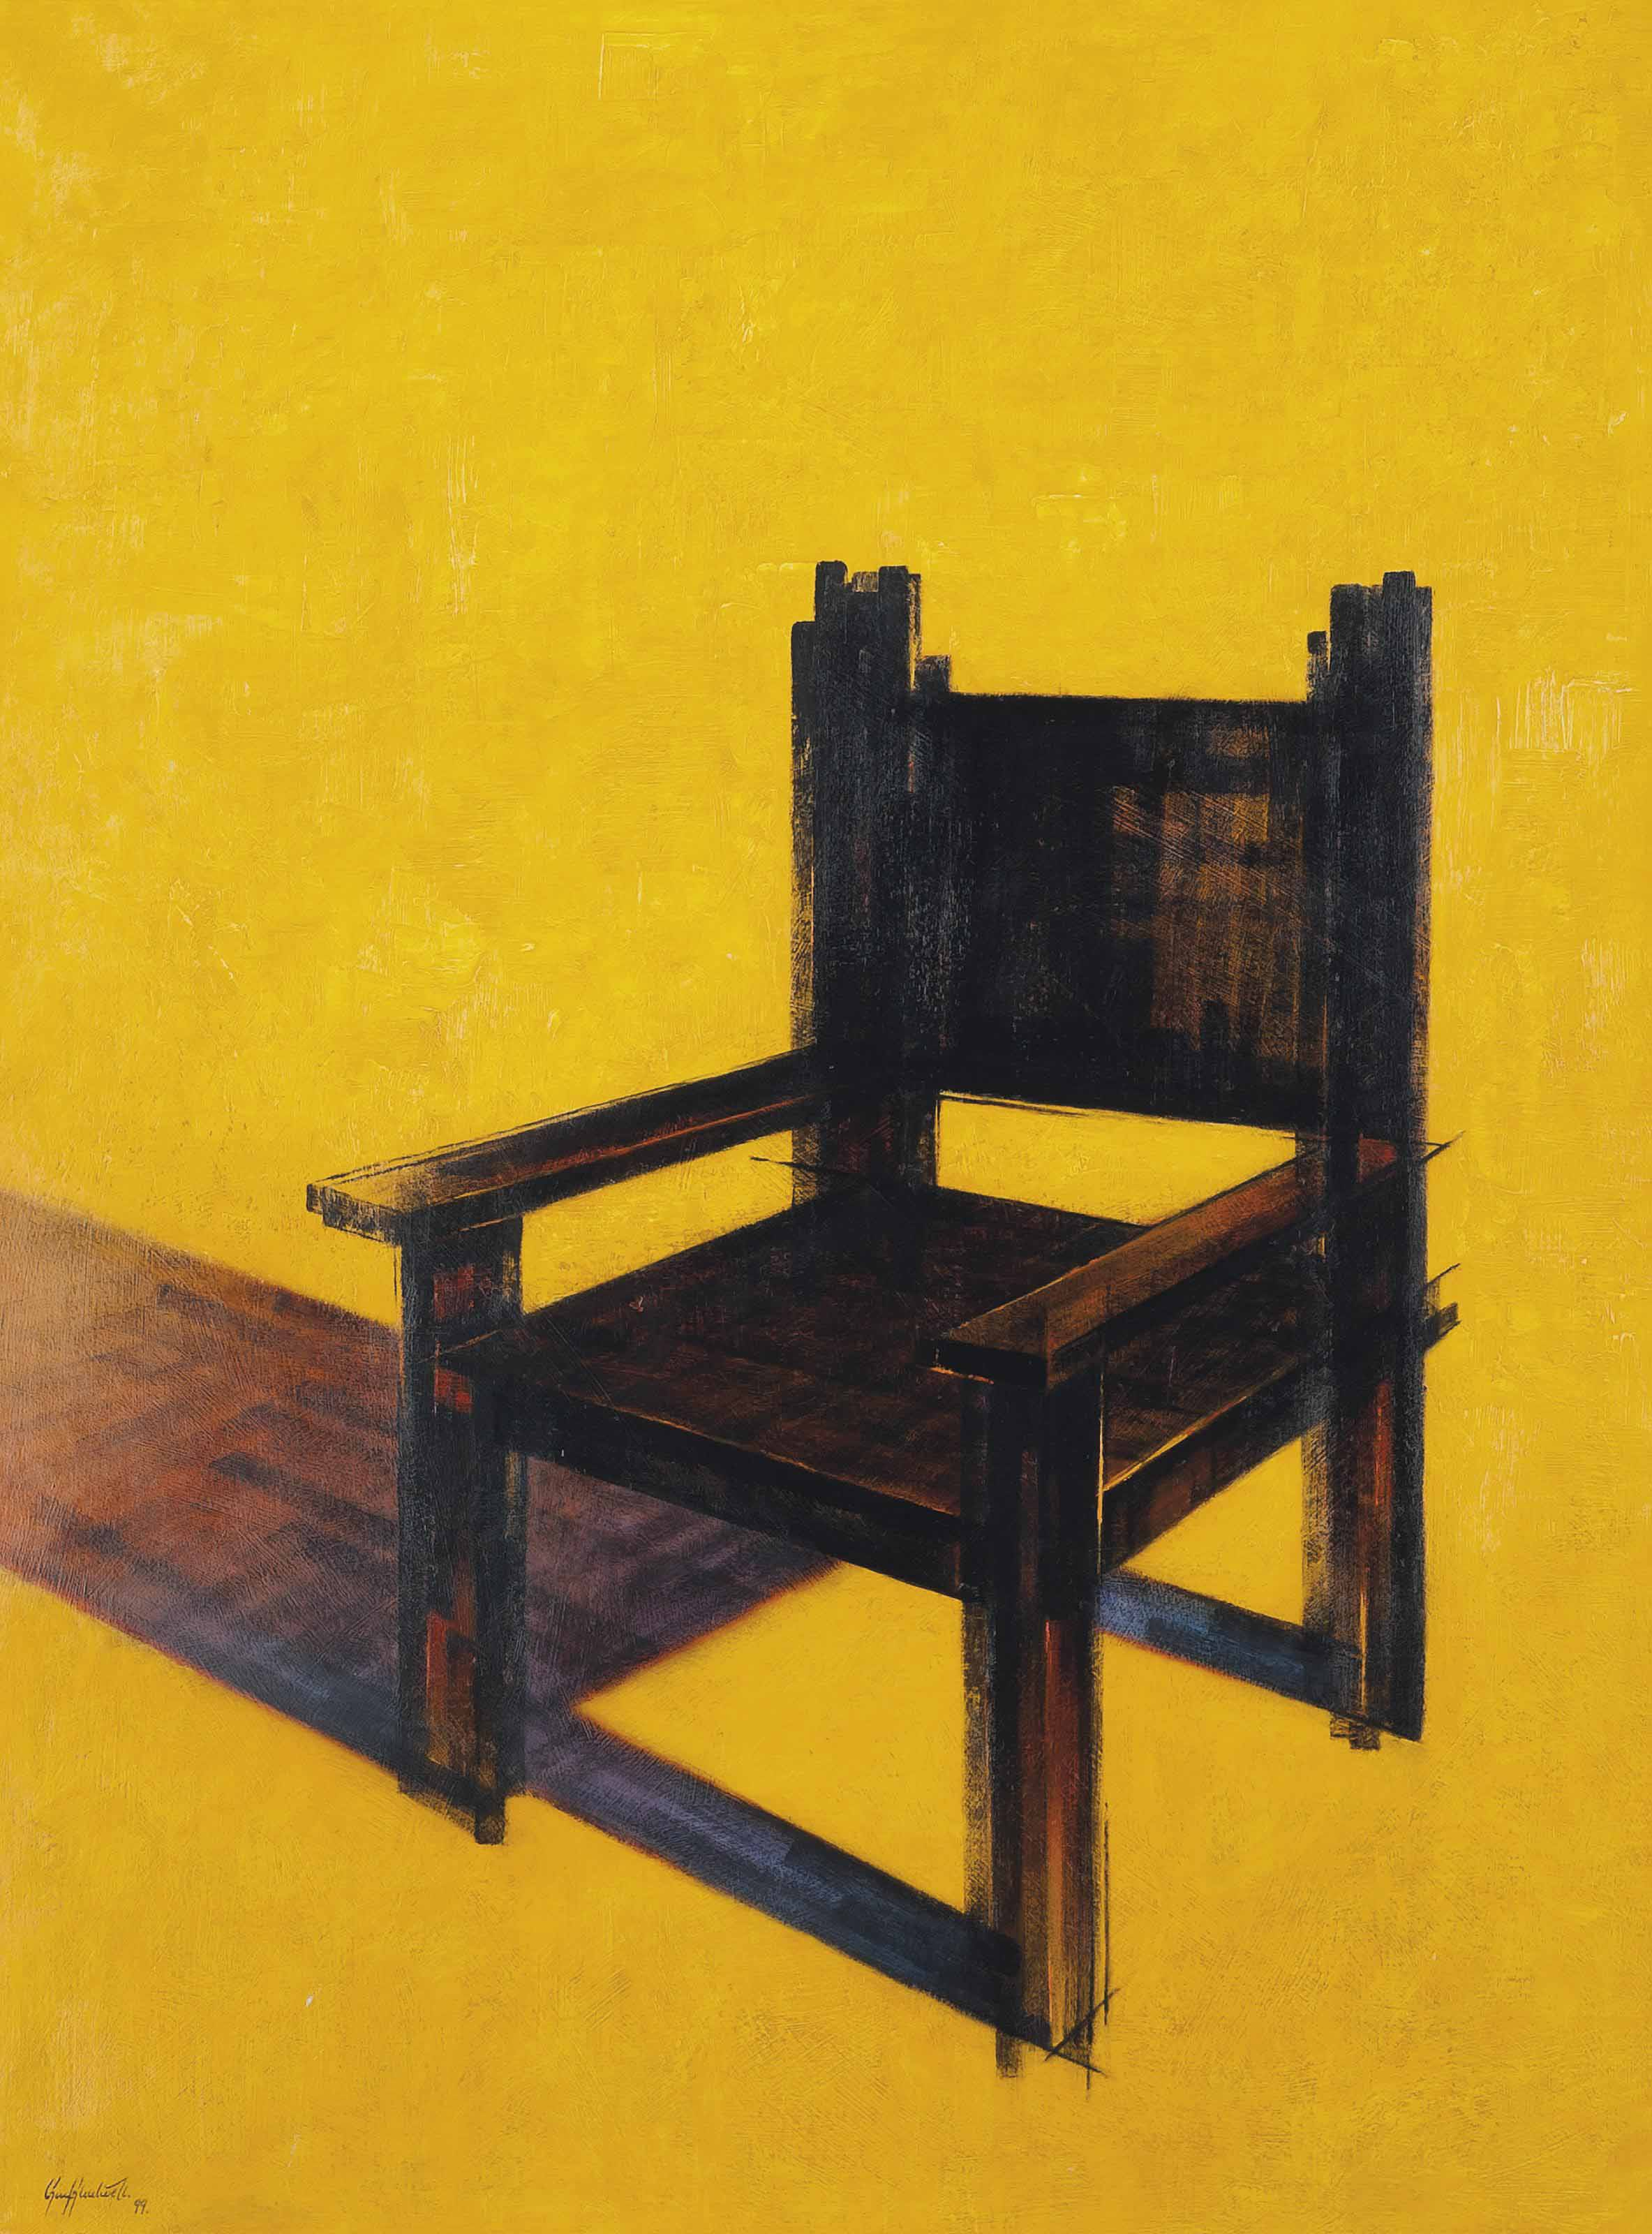 Very square chair